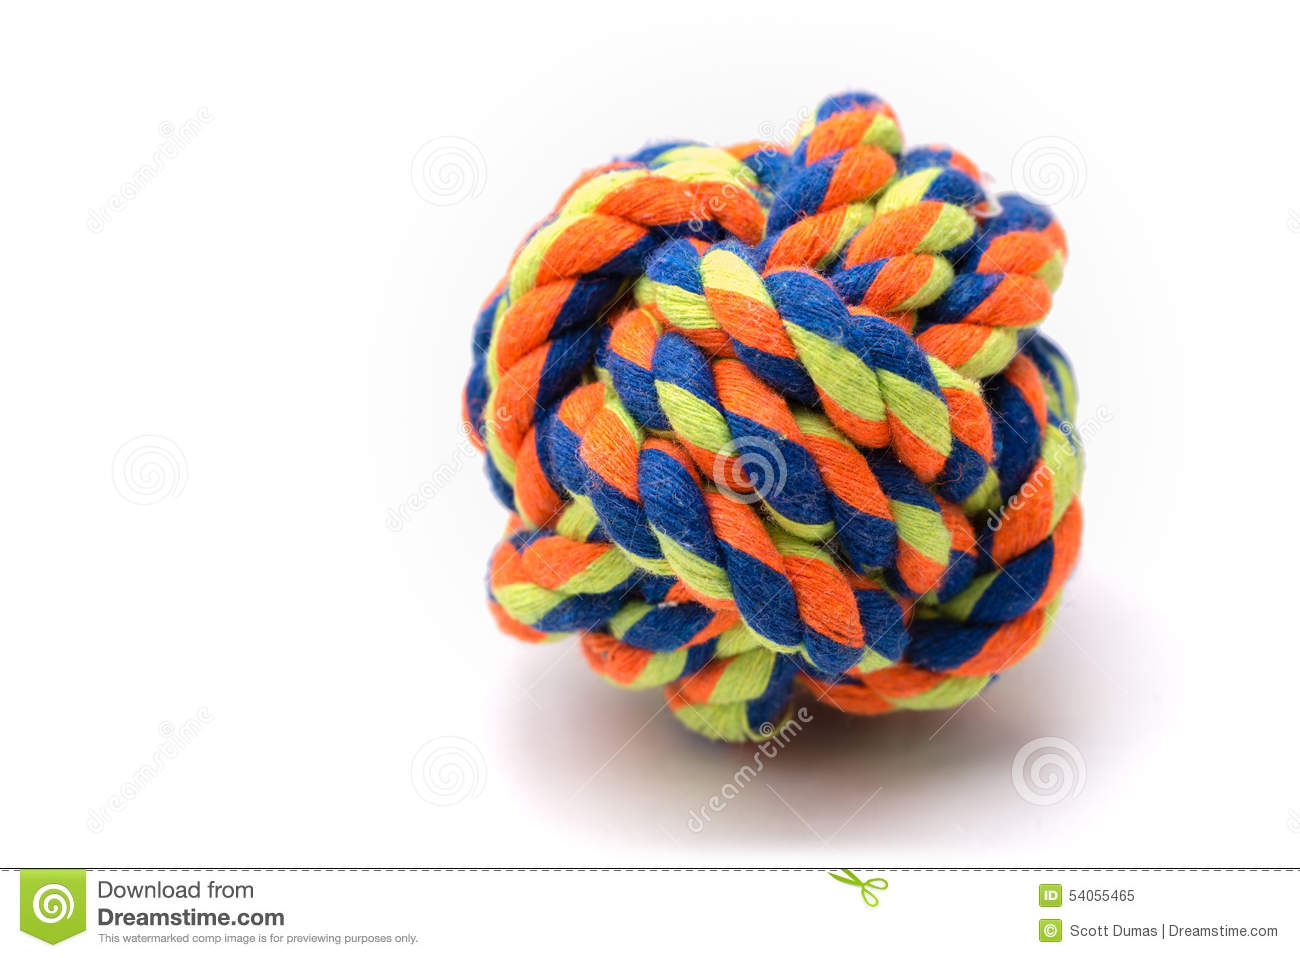 Monkey Toy With Ball For Dogs